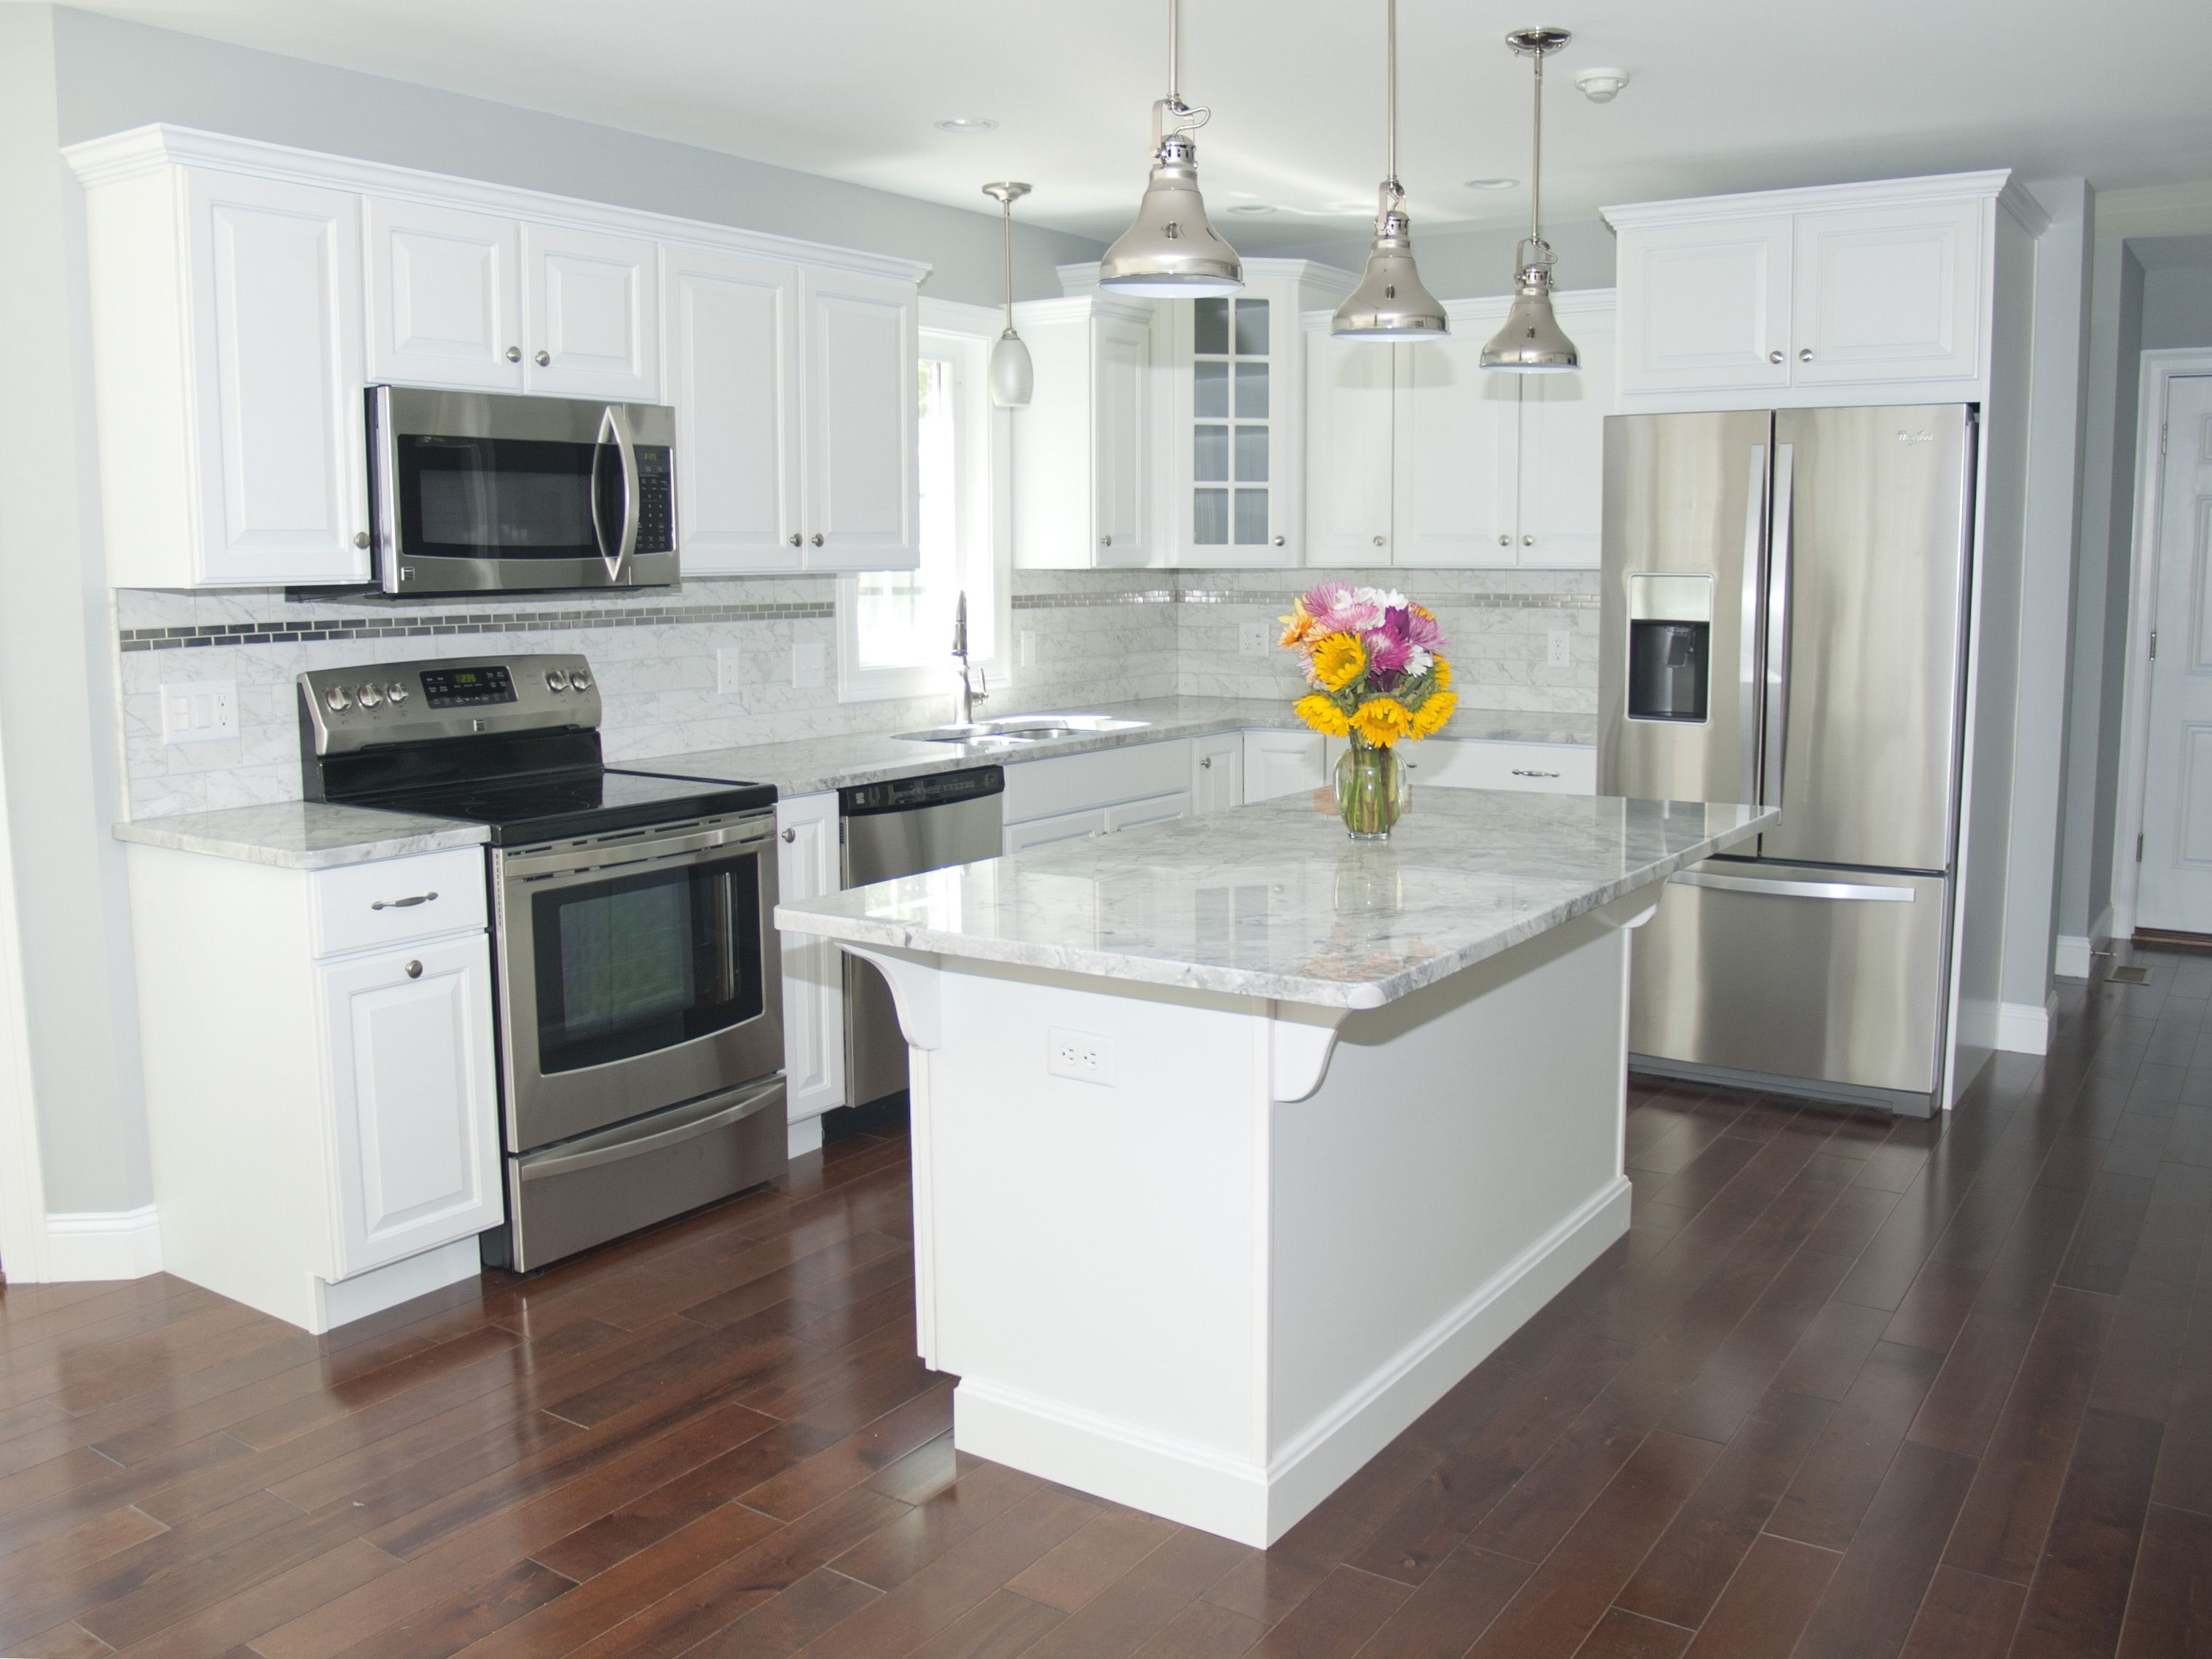 Appliances And Tips For Remodeling A Kitchen On A Budget Appliances Connection Blog Kitchen Layout Trendy Kitchen Backsplash White Kitchen Design Kitchen design with stainless steel appliances